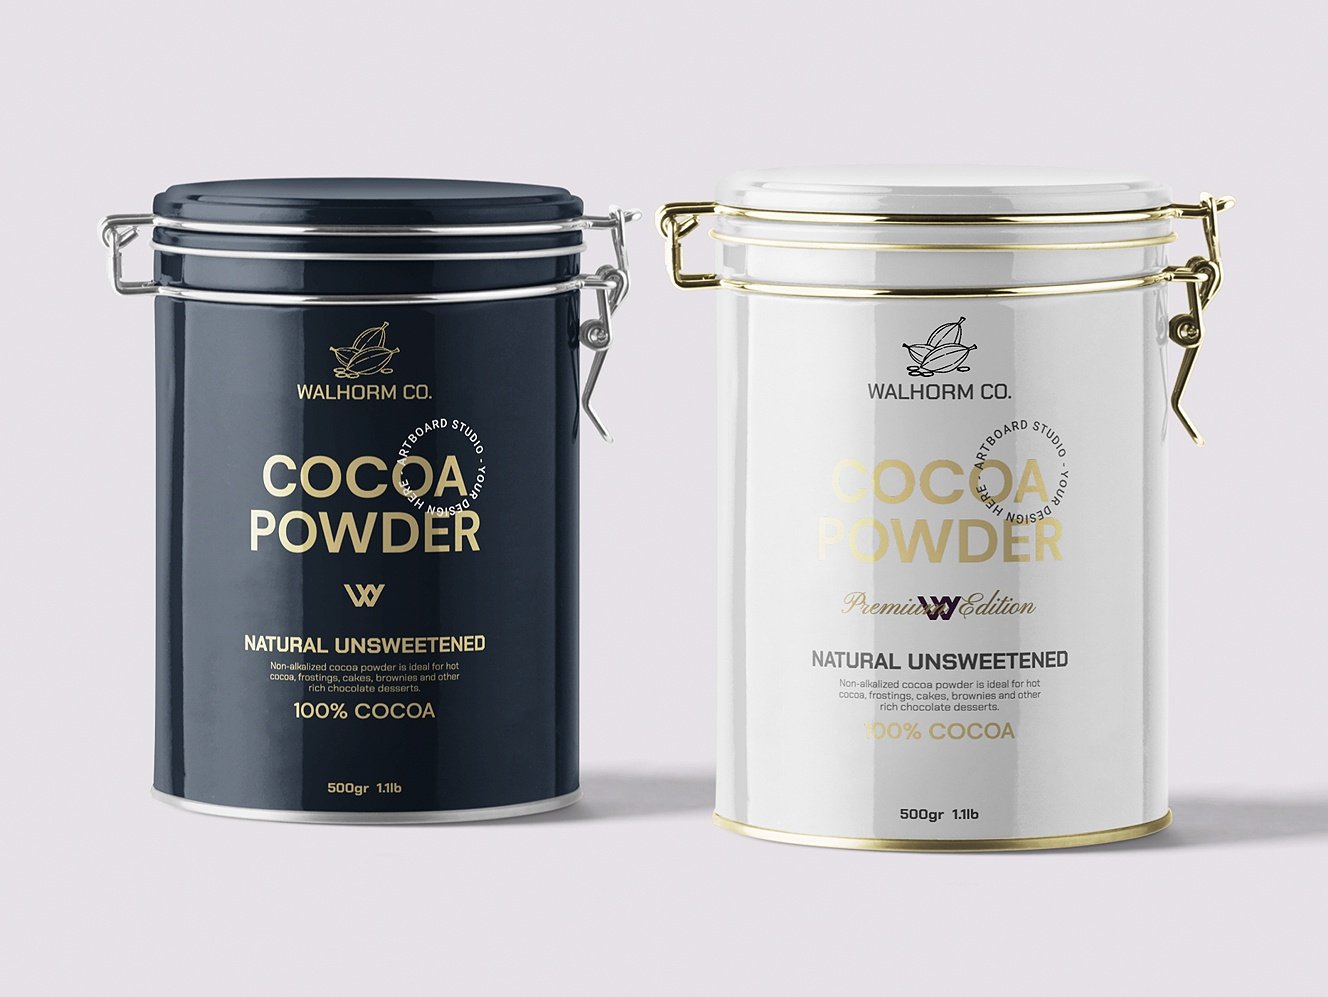 Cocoa Powder Package brand design typography logos mockup branding package label powder cocoa